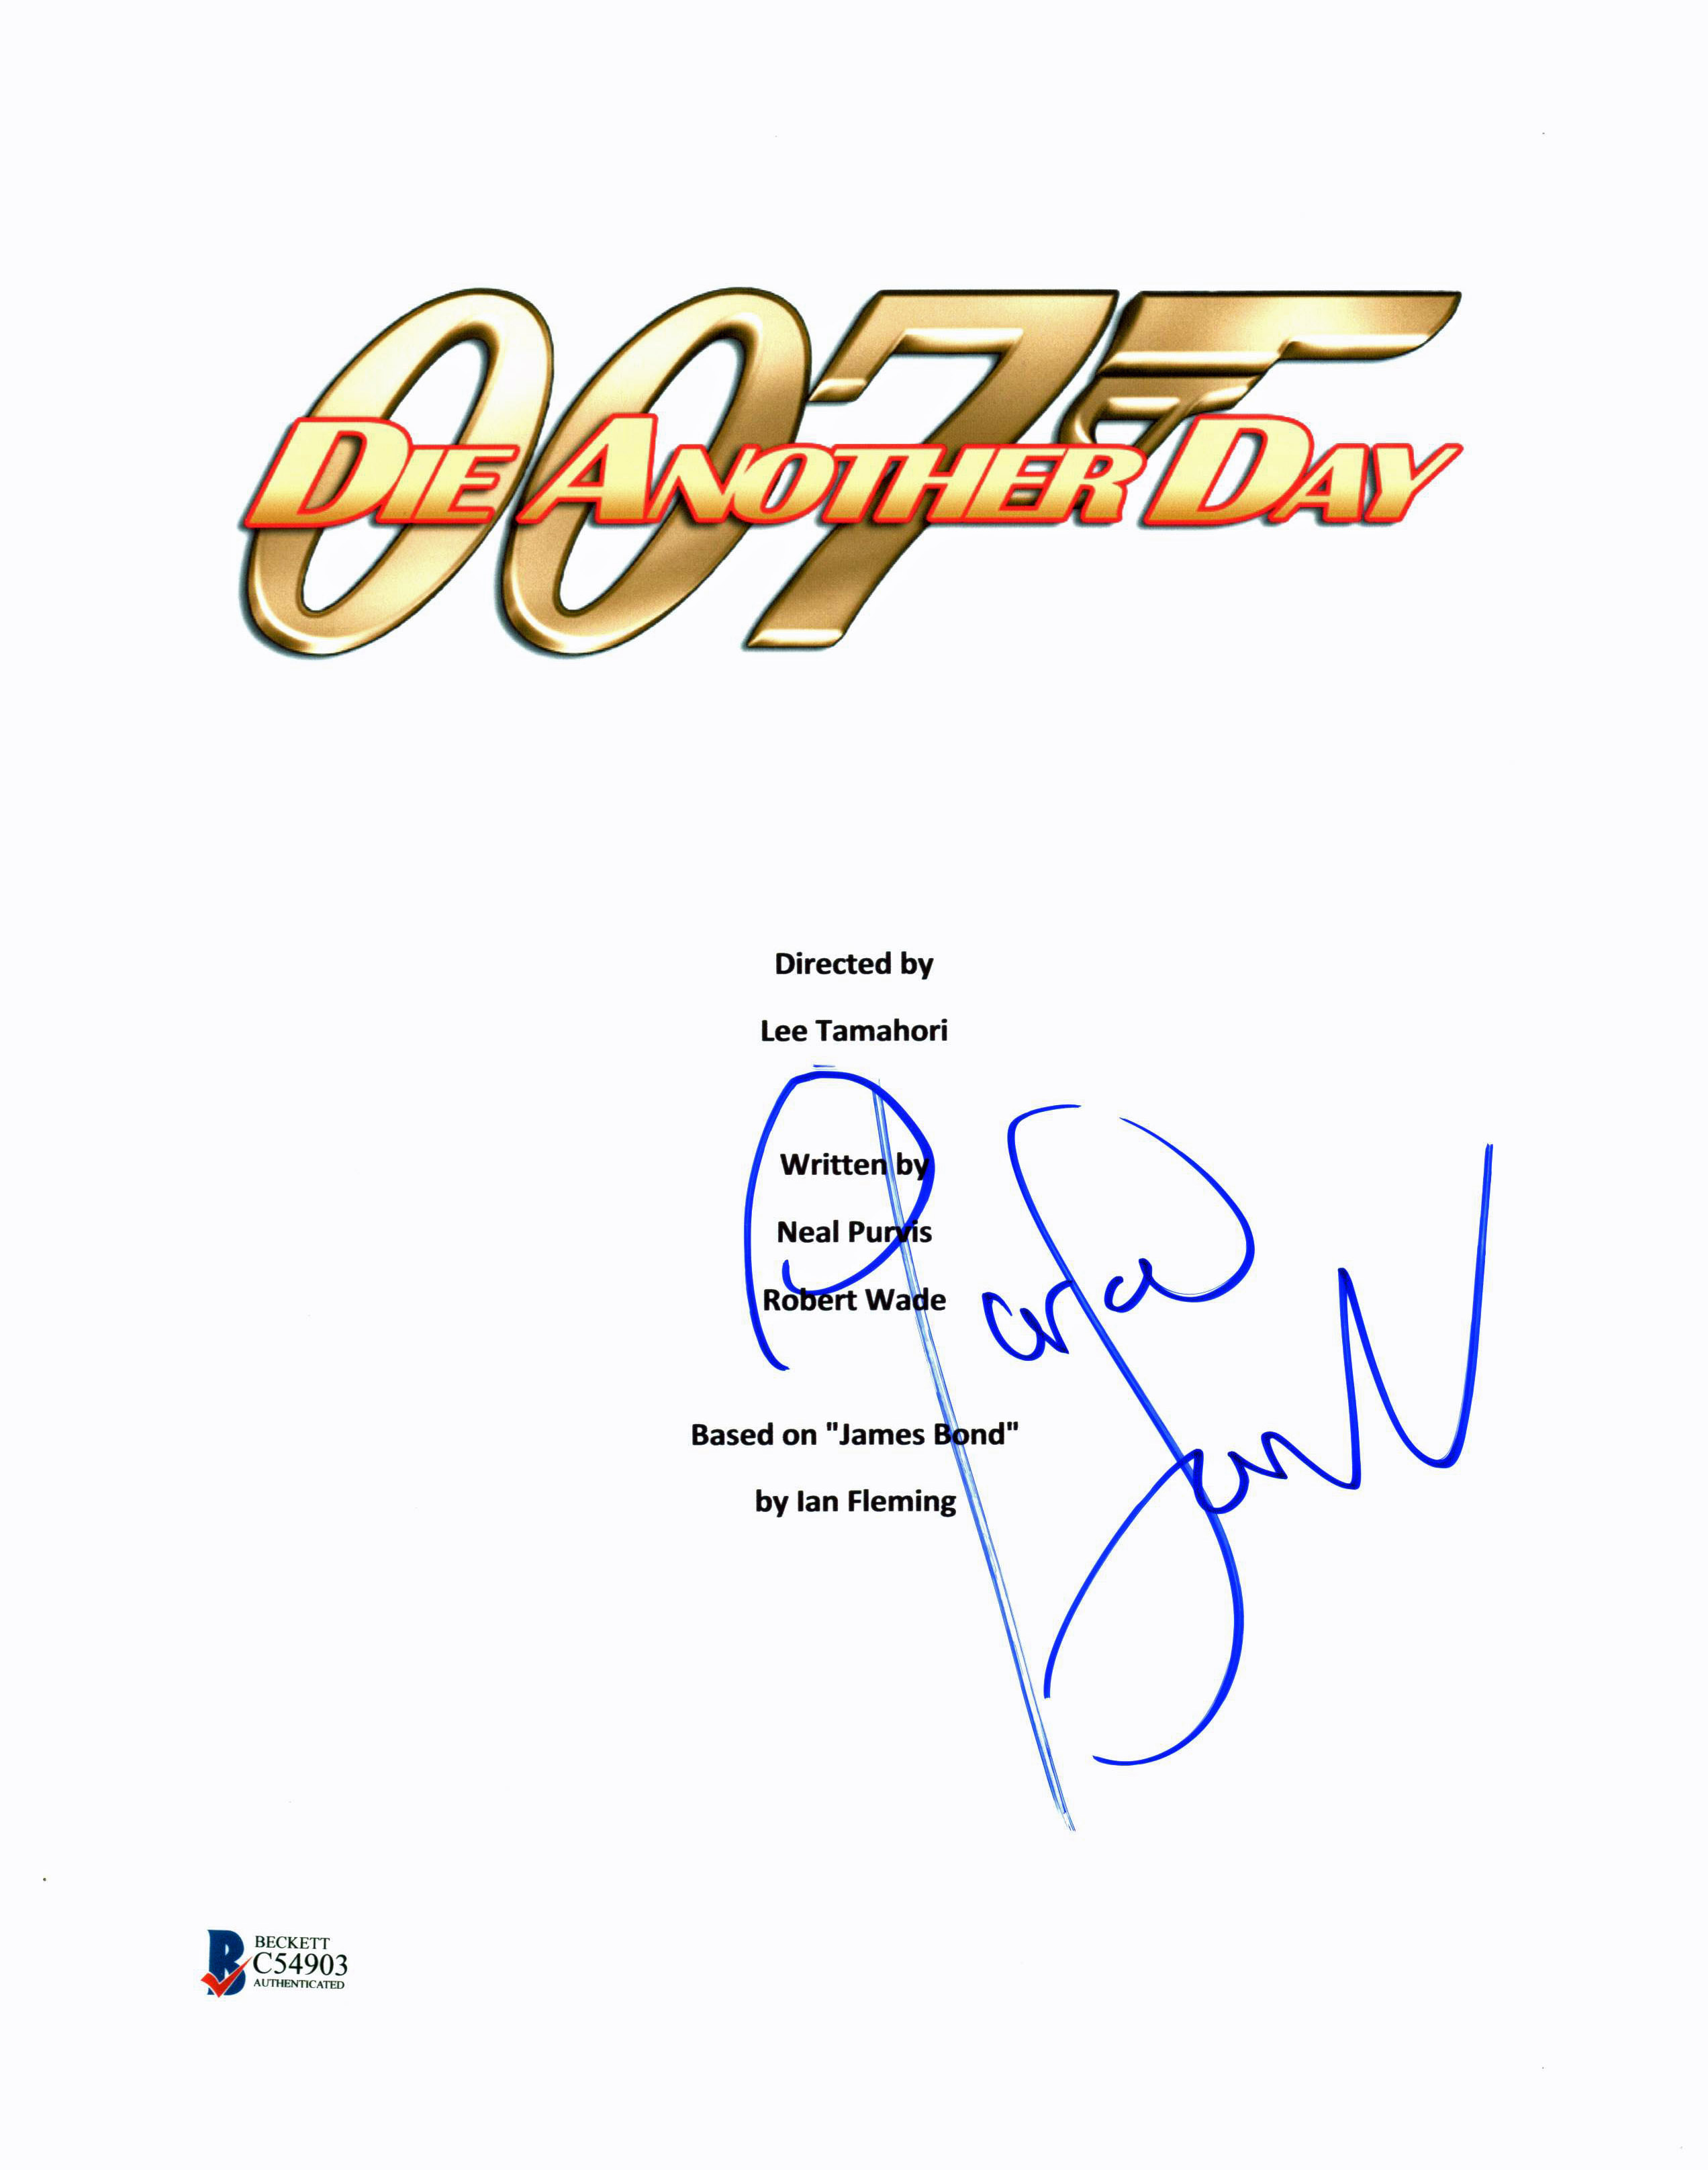 Pierce Brosnan Authentic Signed 007 Die Another Day Script Cover BAS #C54903